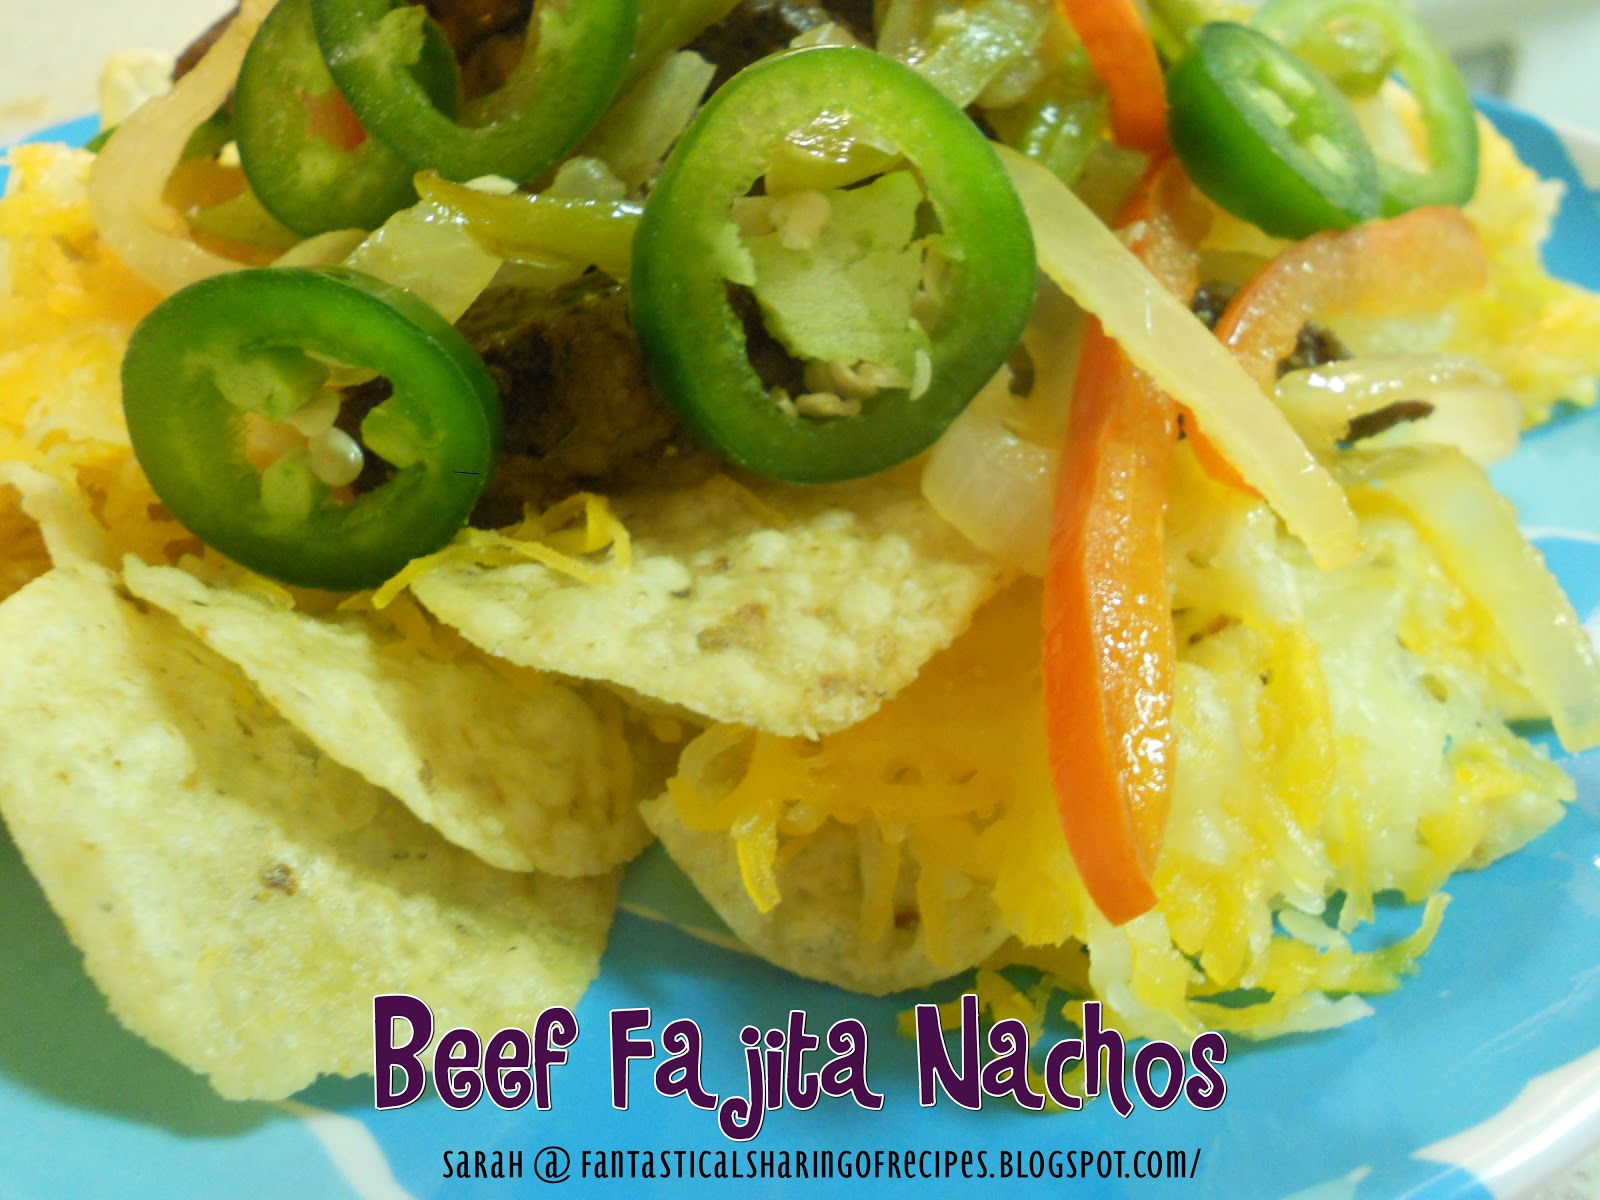 Fantastical Sharing of Recipes...and more!: Beef Fajita Nachos